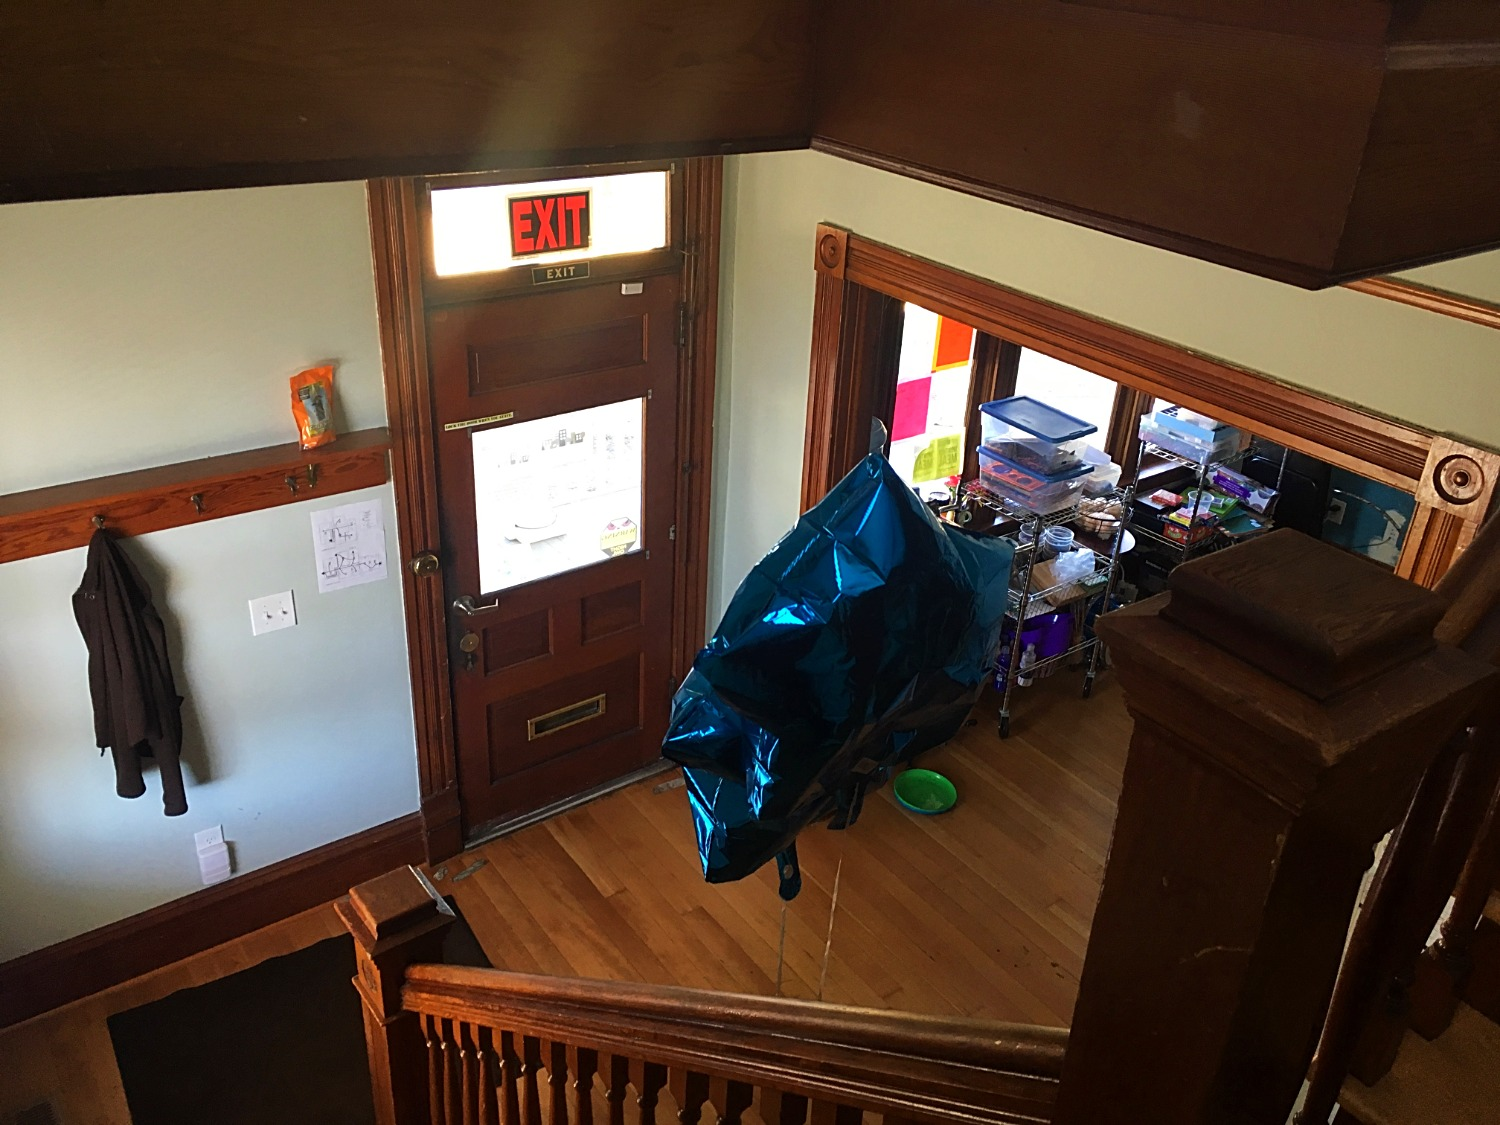 Looking from the Stairwell